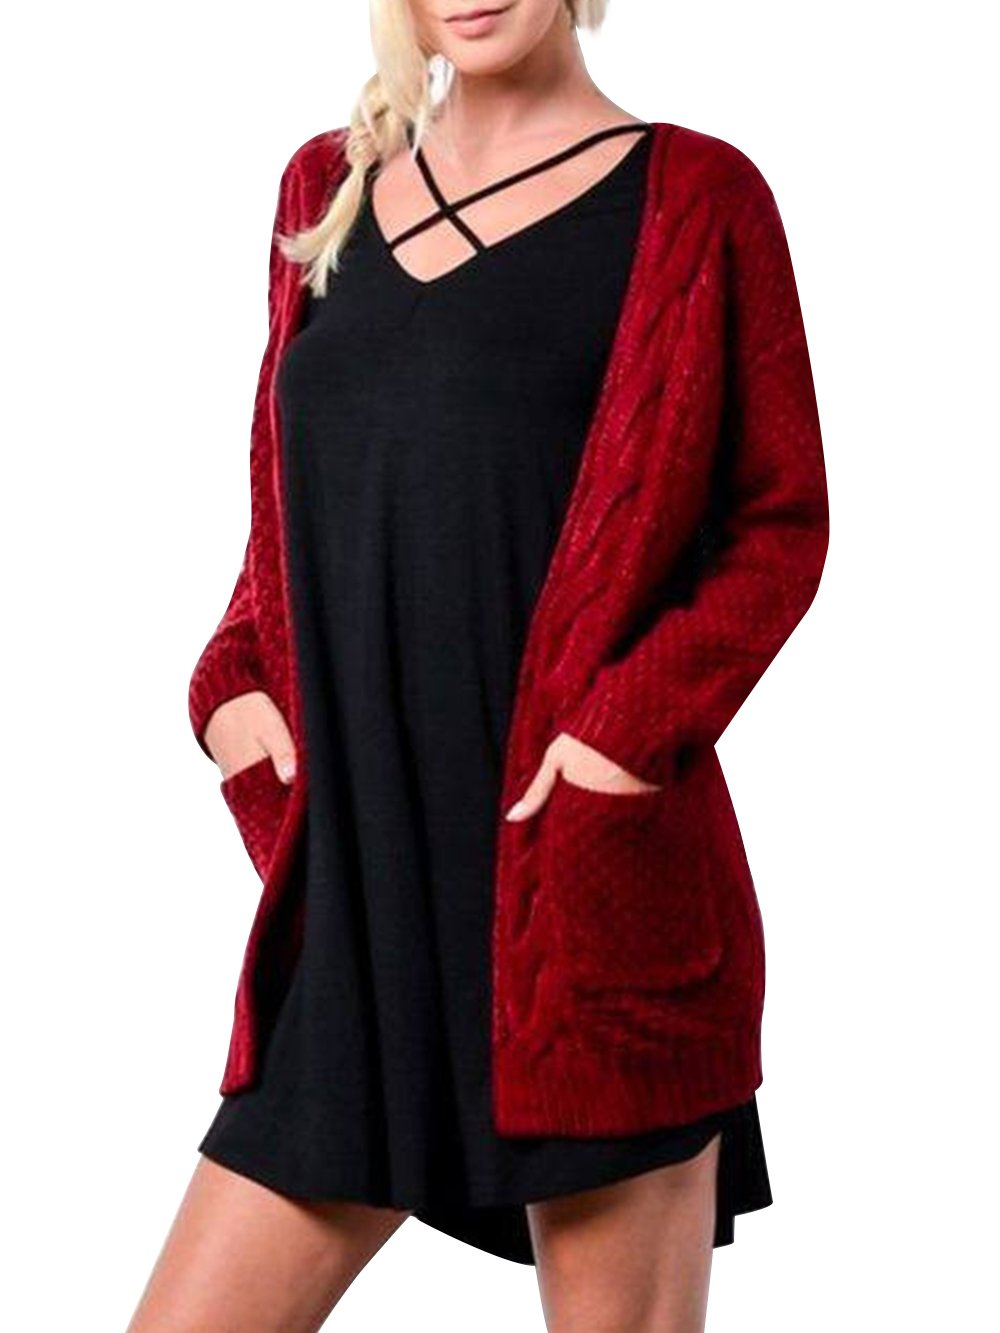 HENCY Women's Classic Open Front Long Sleeve Loose Knit Warm Cardigan Sweater with Pockets